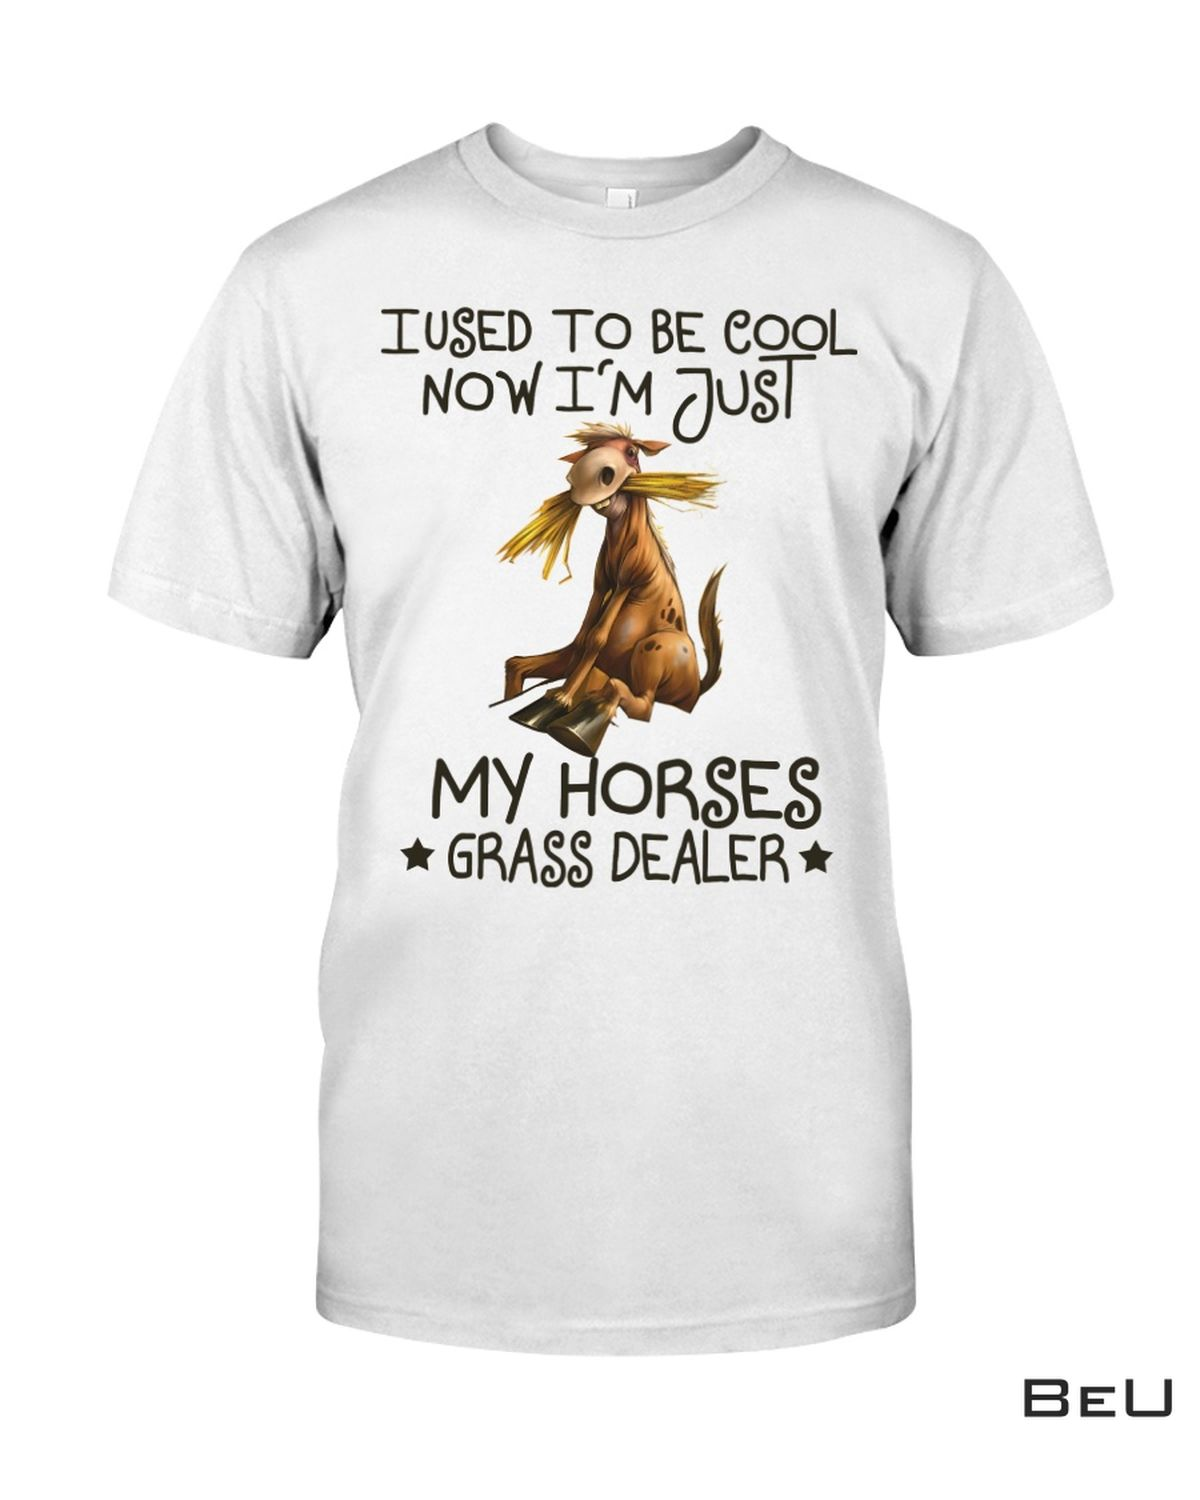 I Used To Be Cool Now I'm Just My Horse Grass Dealer Shirt, hoodie, tank top